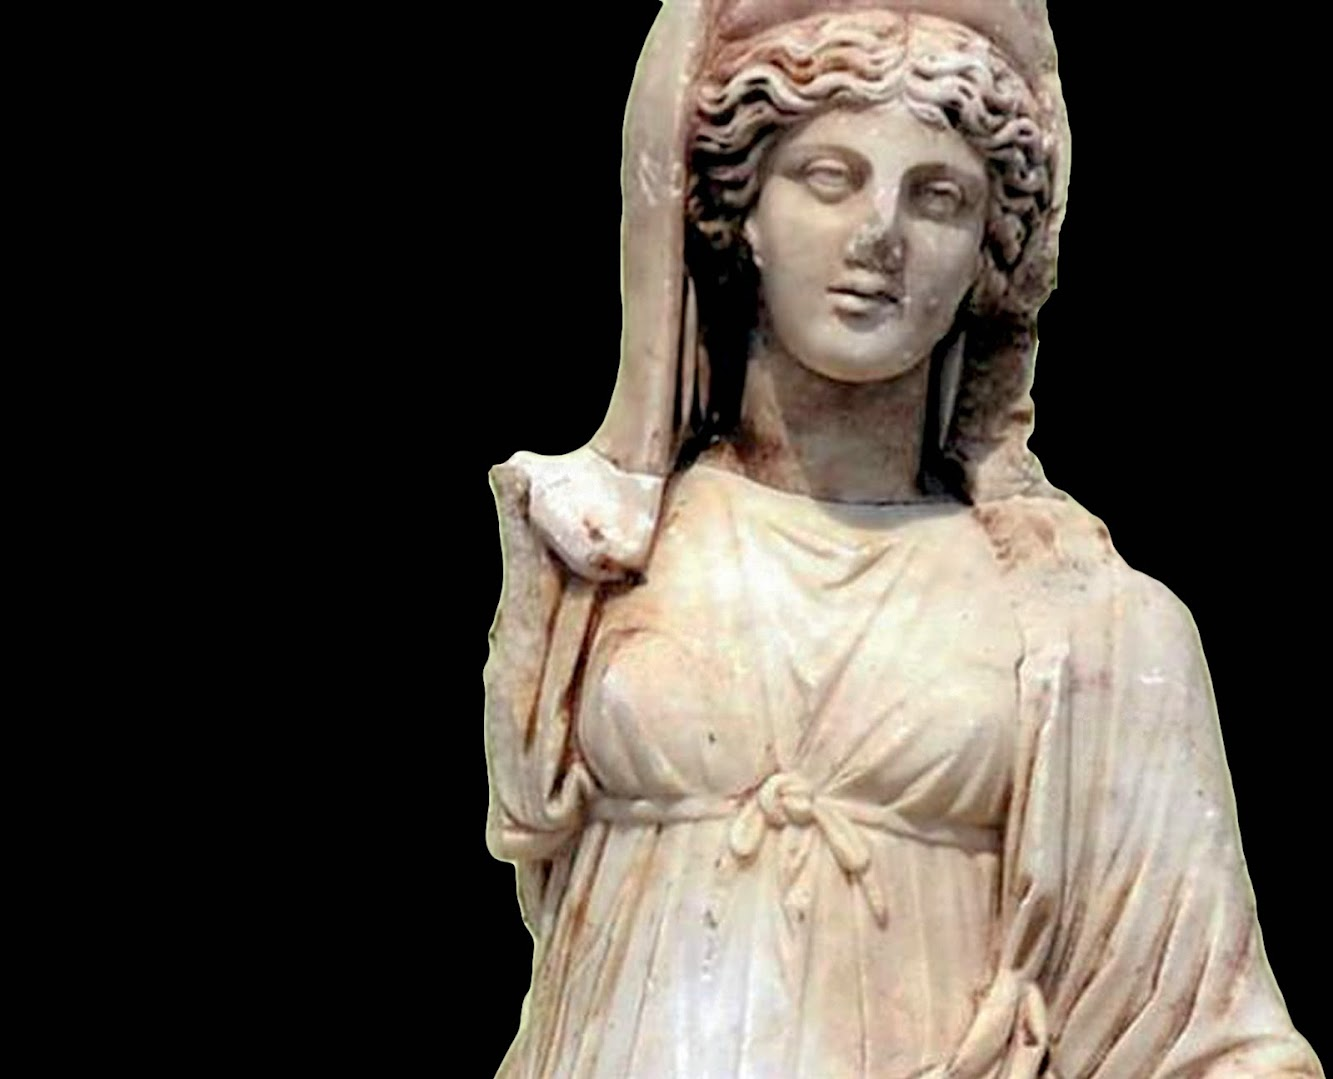 Near East: Search to find missing pieces of Greek statue started